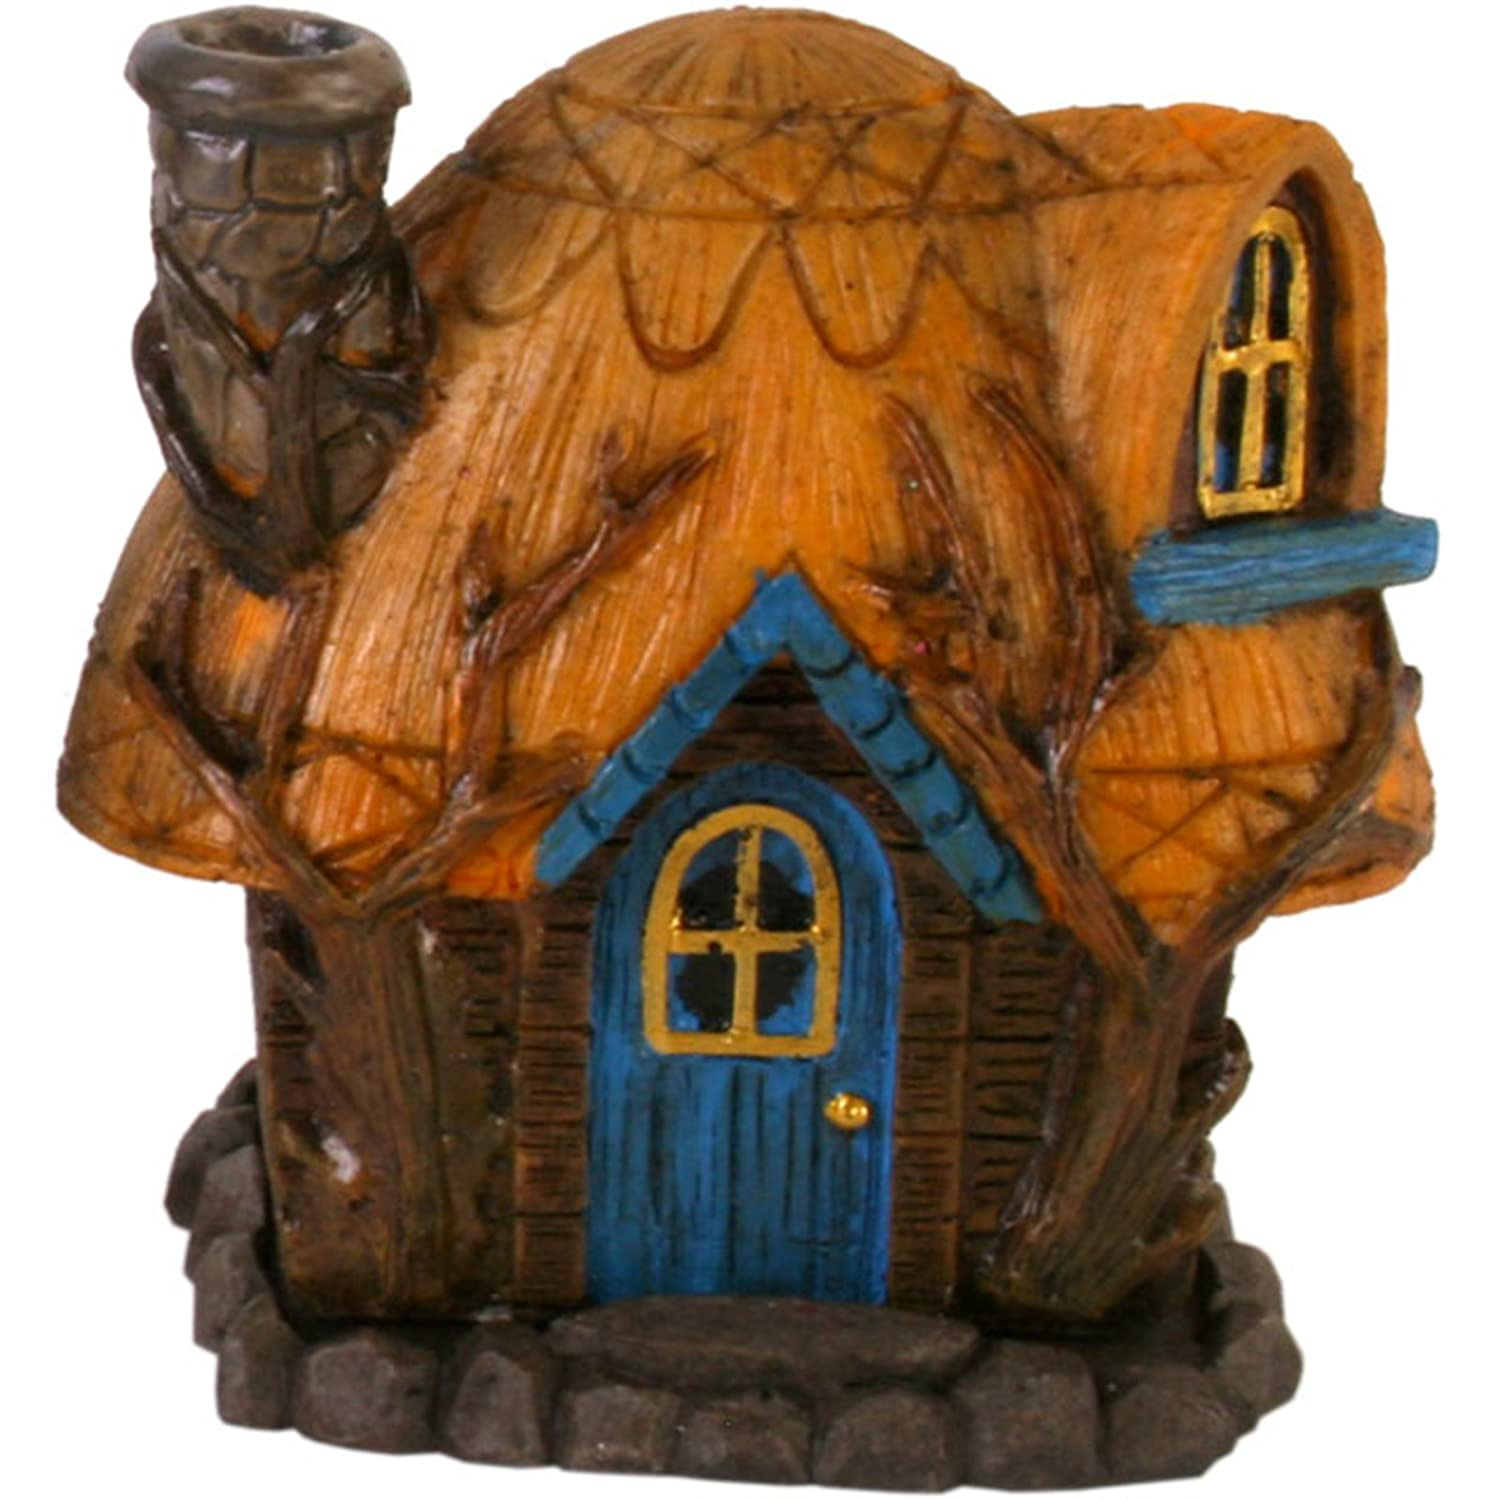 Fairy House Smoking Chimney Incense Burners Buttercup Cottage Yellow Spi